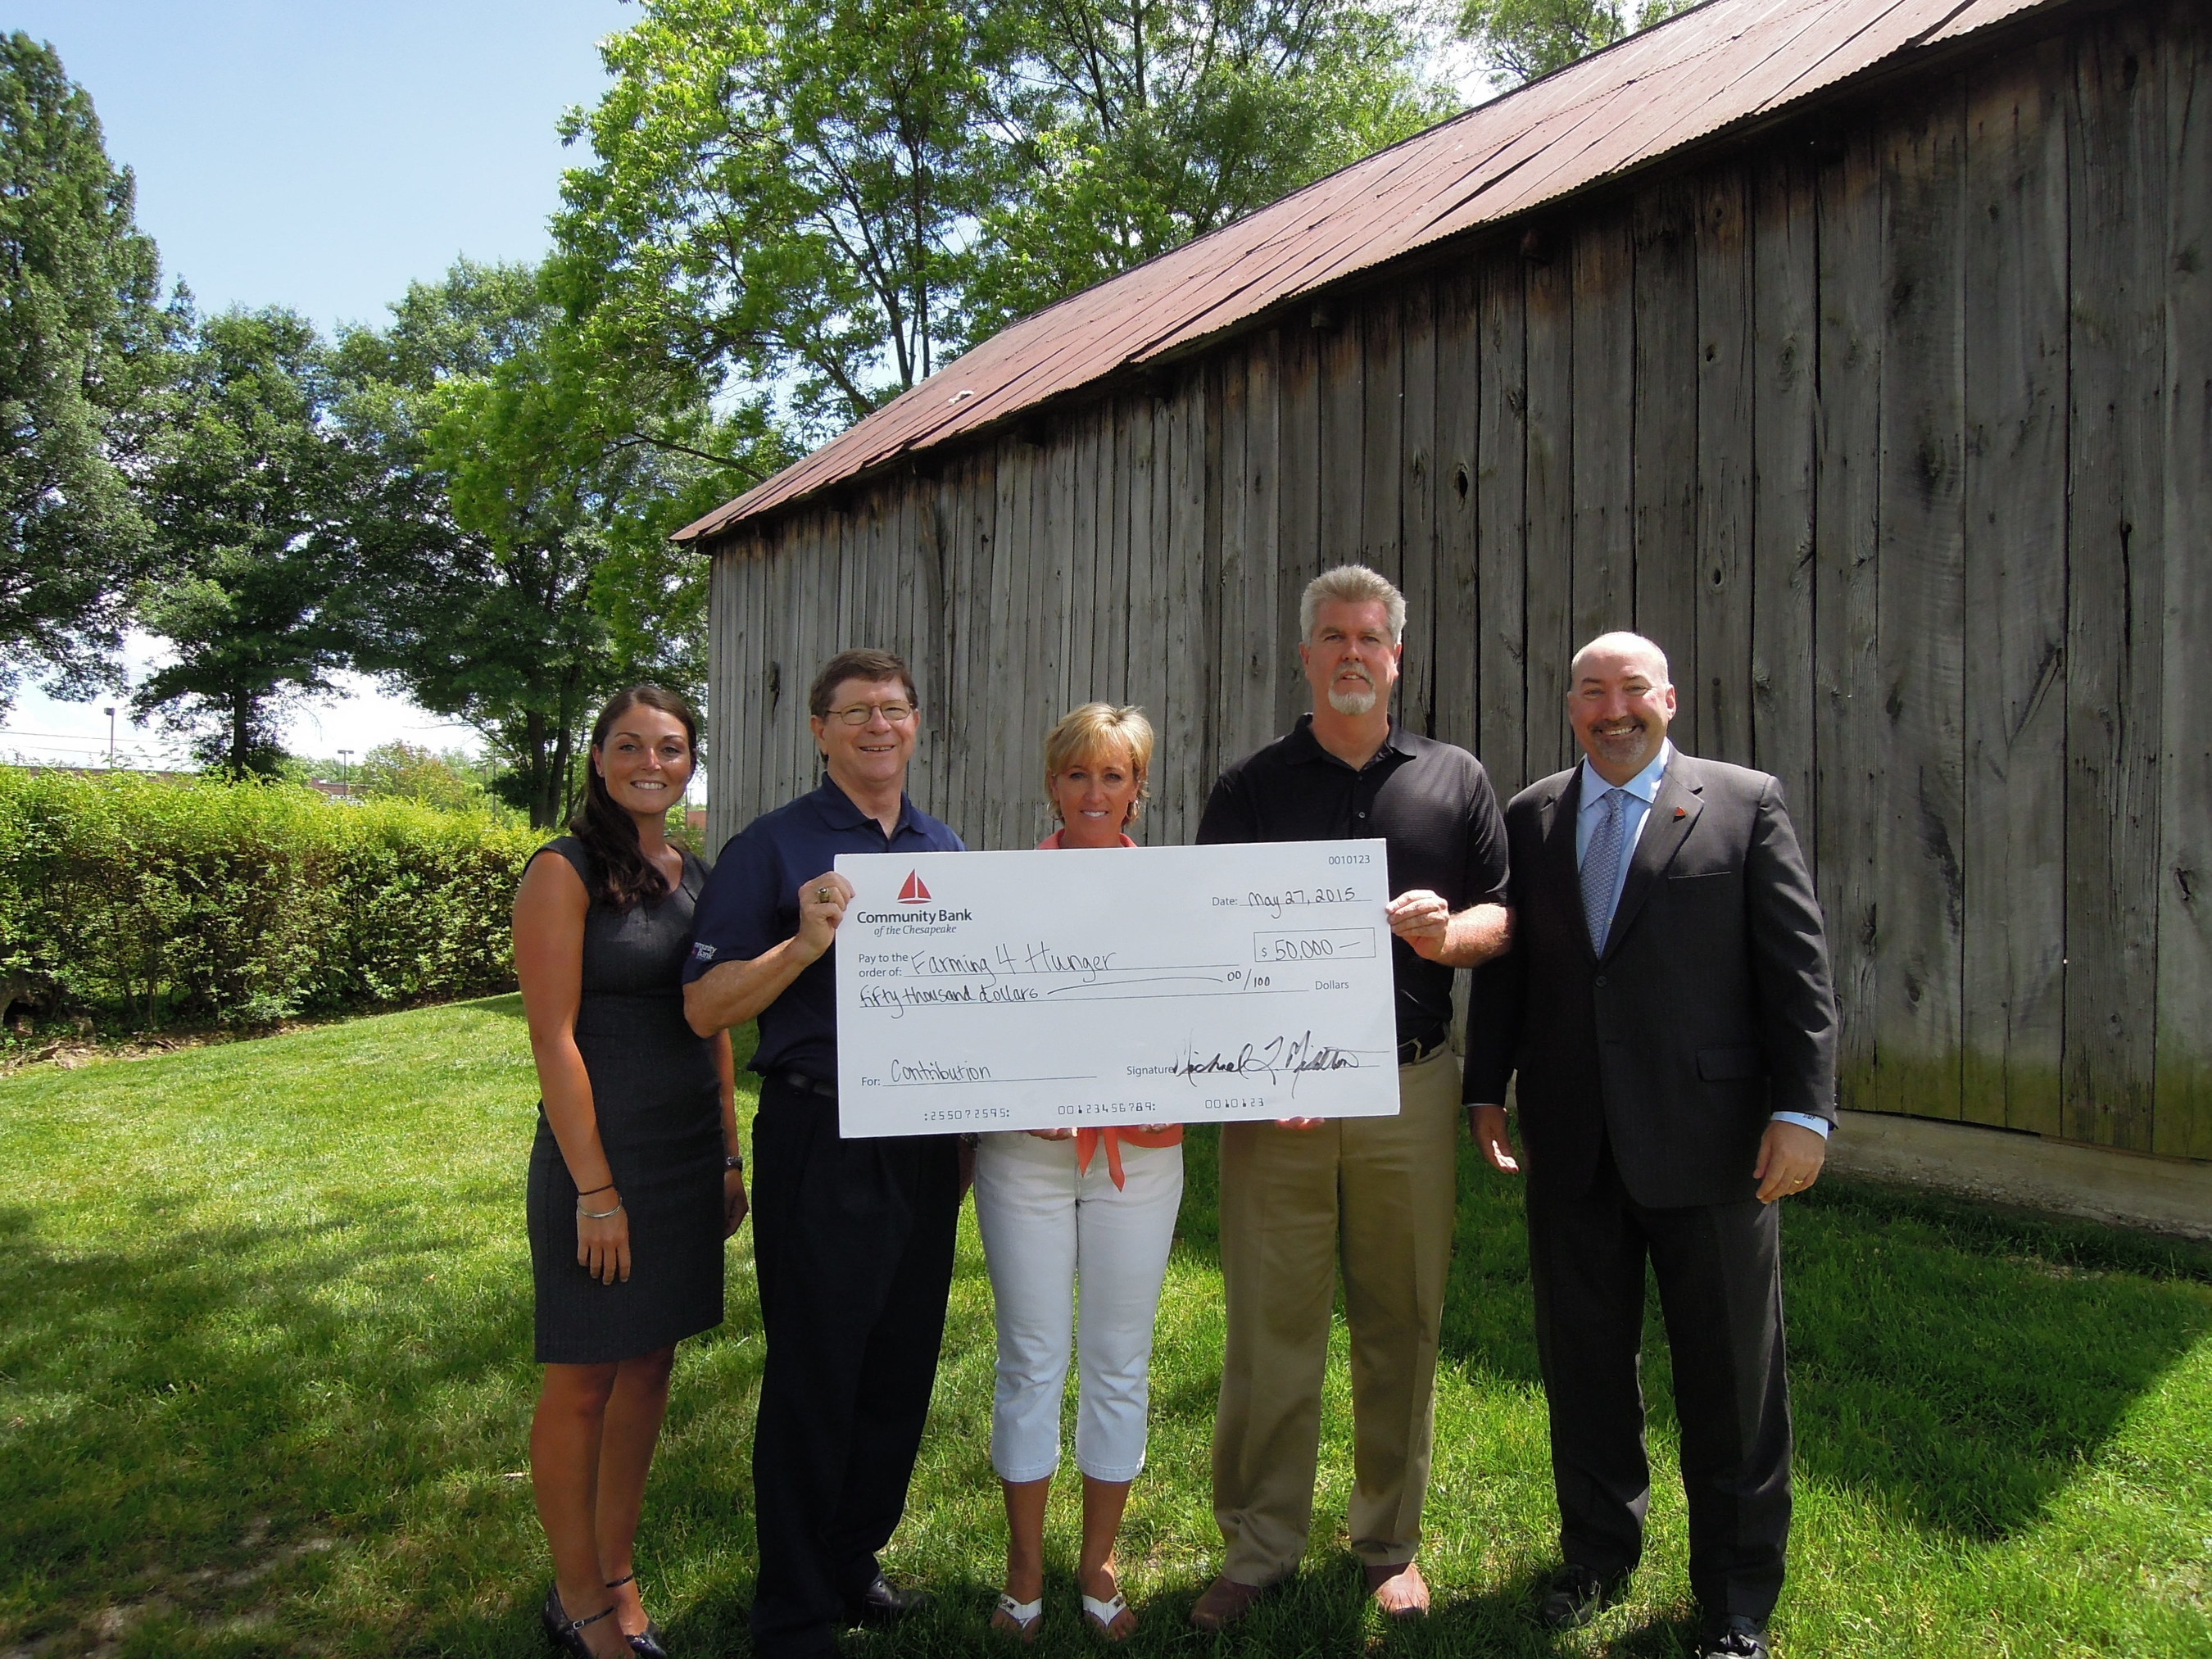 Community Bank of the Chesapeake representatives present the donation check to Farming 4 Hunger. Pictured from left to right: Lacey Pierce, Senior Vice President, Senior Lender for Community Bank of the Chesapeake; Michael Middleton, Executive Chairman of the Board of Directors for Community Bank of the Chesapeake; Farming 4 Hunger treasurer Rose Torboli and founder Bernie Fowler; and Don Parsons, Jr., Senior Vice President, Senior Lender with Community Bank of the Chesapeake.